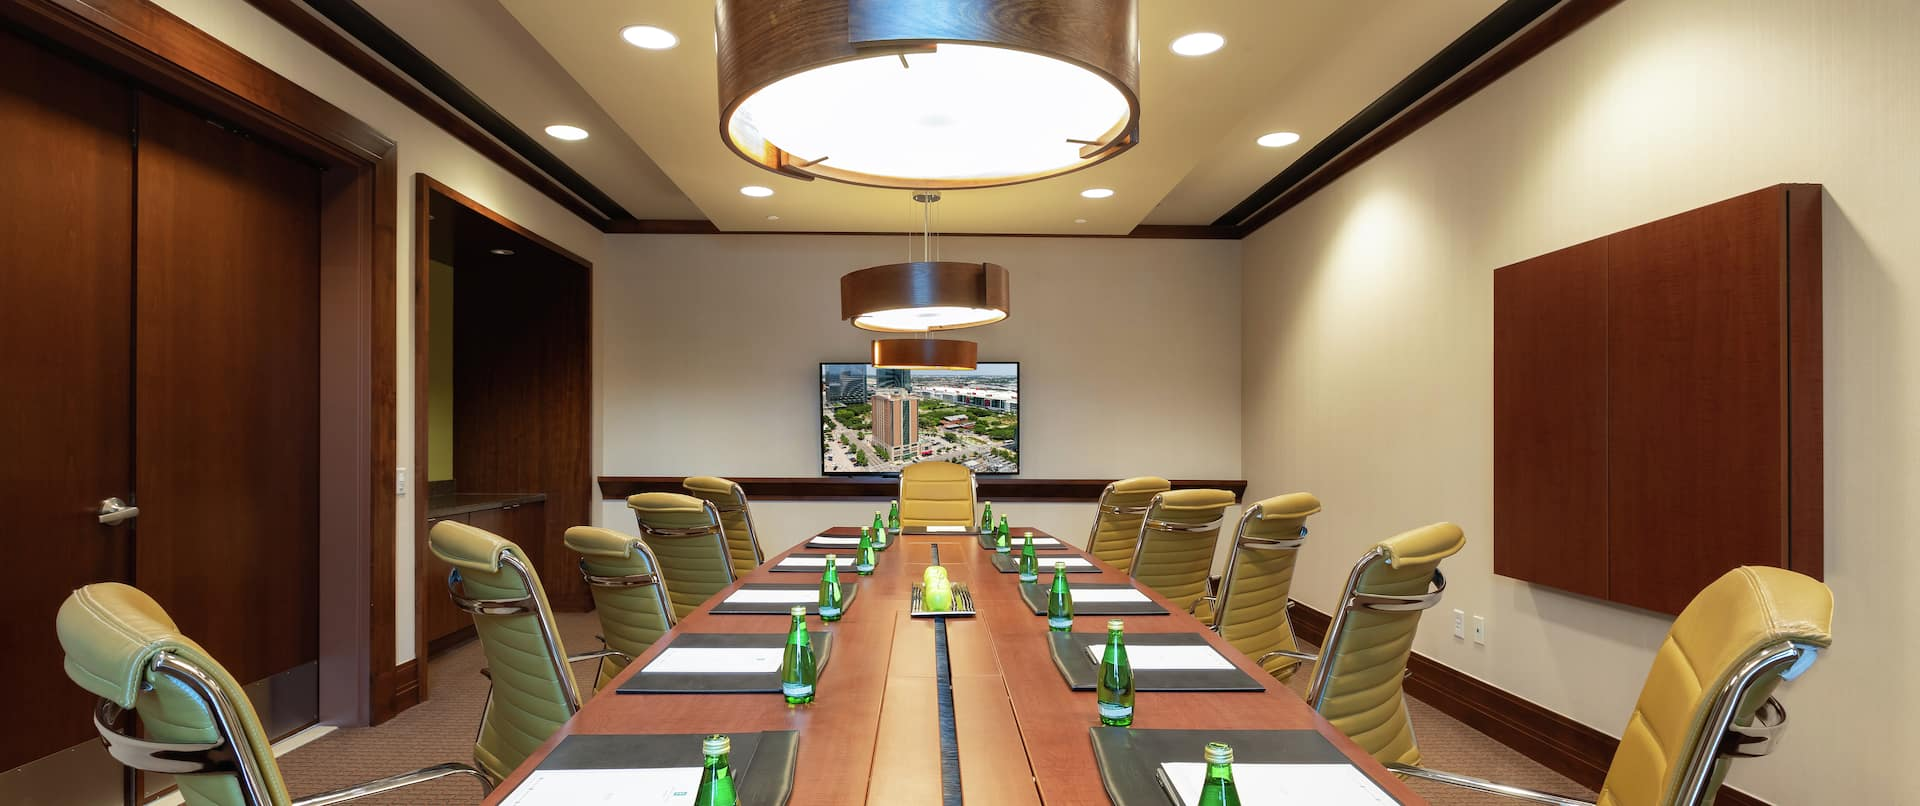 Conference Room with Seating for 12 Guests